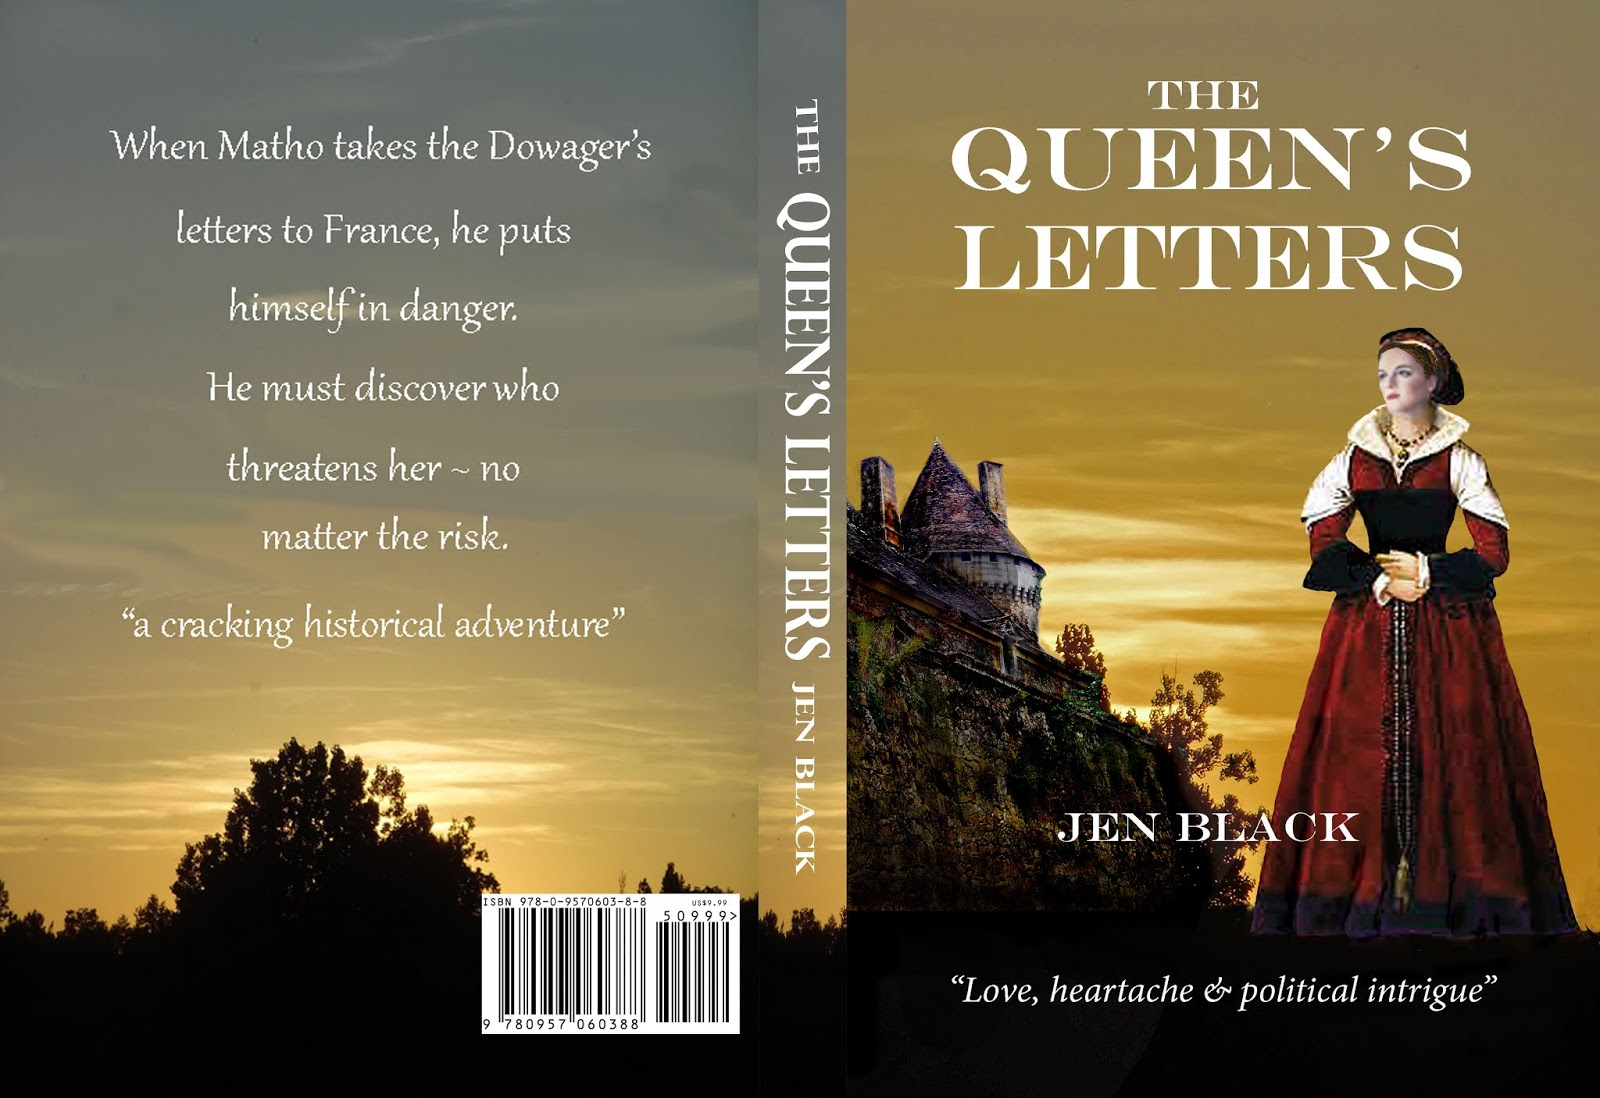 JEN BLACK: Hints and tips on publishing a book with KDP